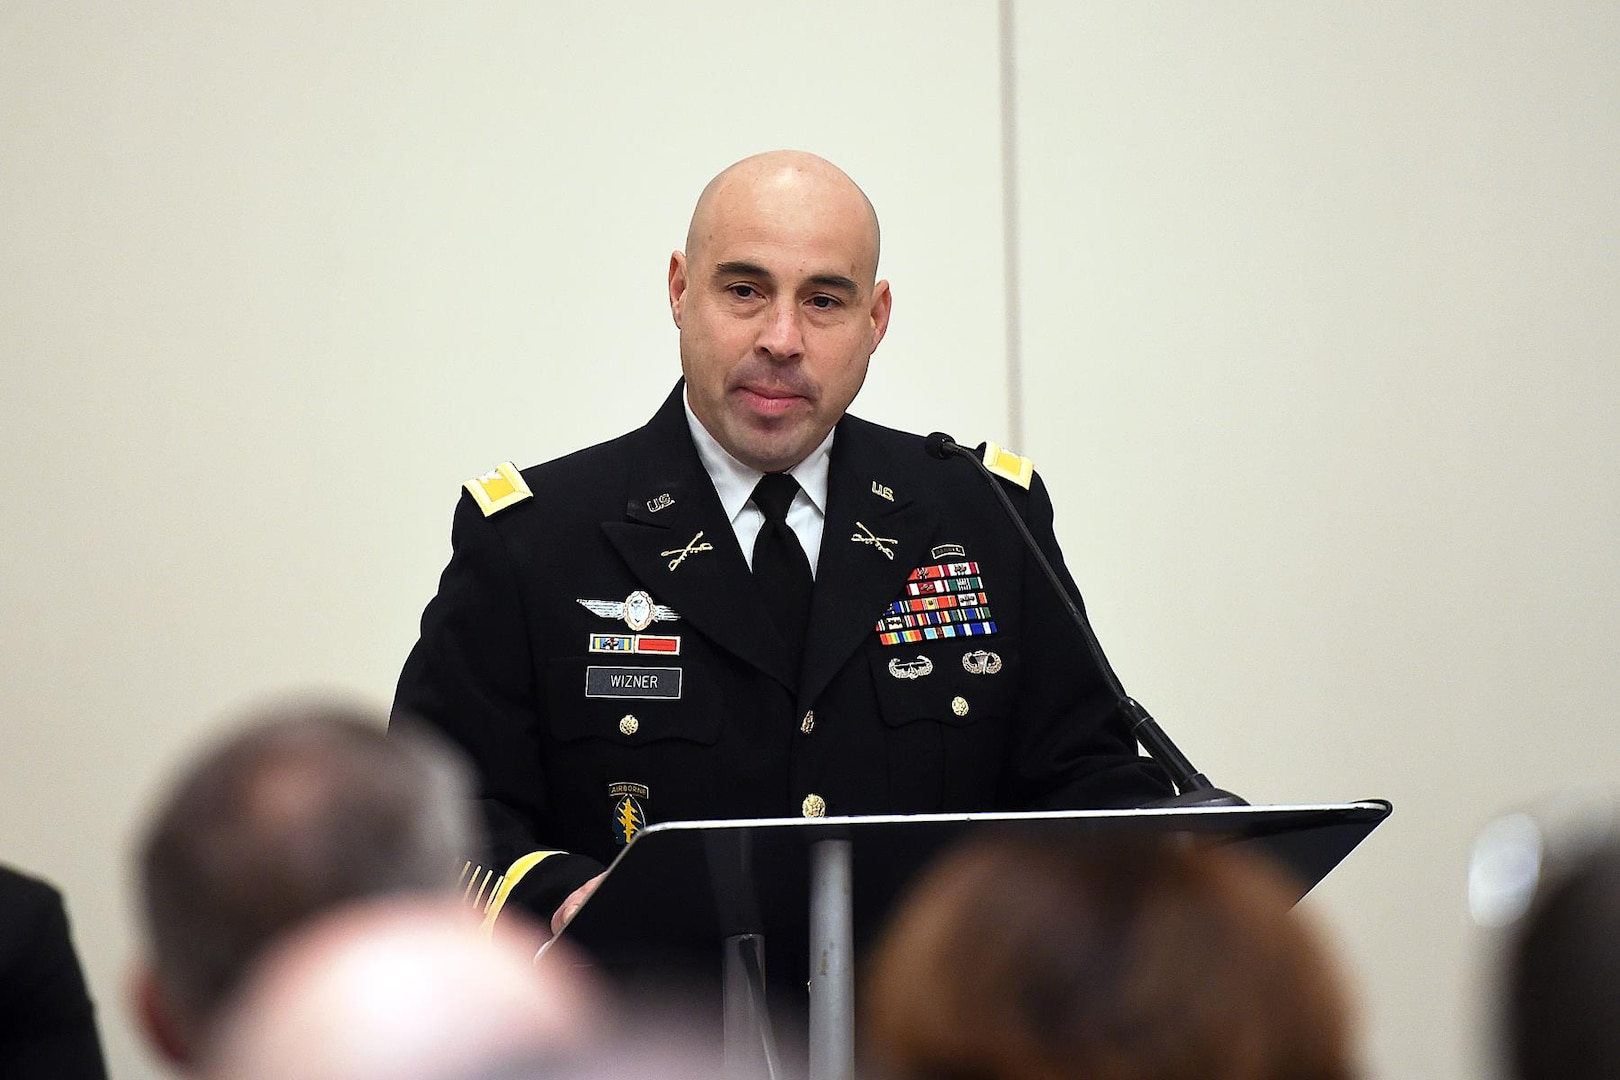 Army Col. Anthony Wizner addresses the audience during a change of leadership ceremony in Schaumburg, Ill., Oct. 13. He assumed command of Defense Contract Management Agency Central Regional Command. (Army photo by Anthony Taylor)